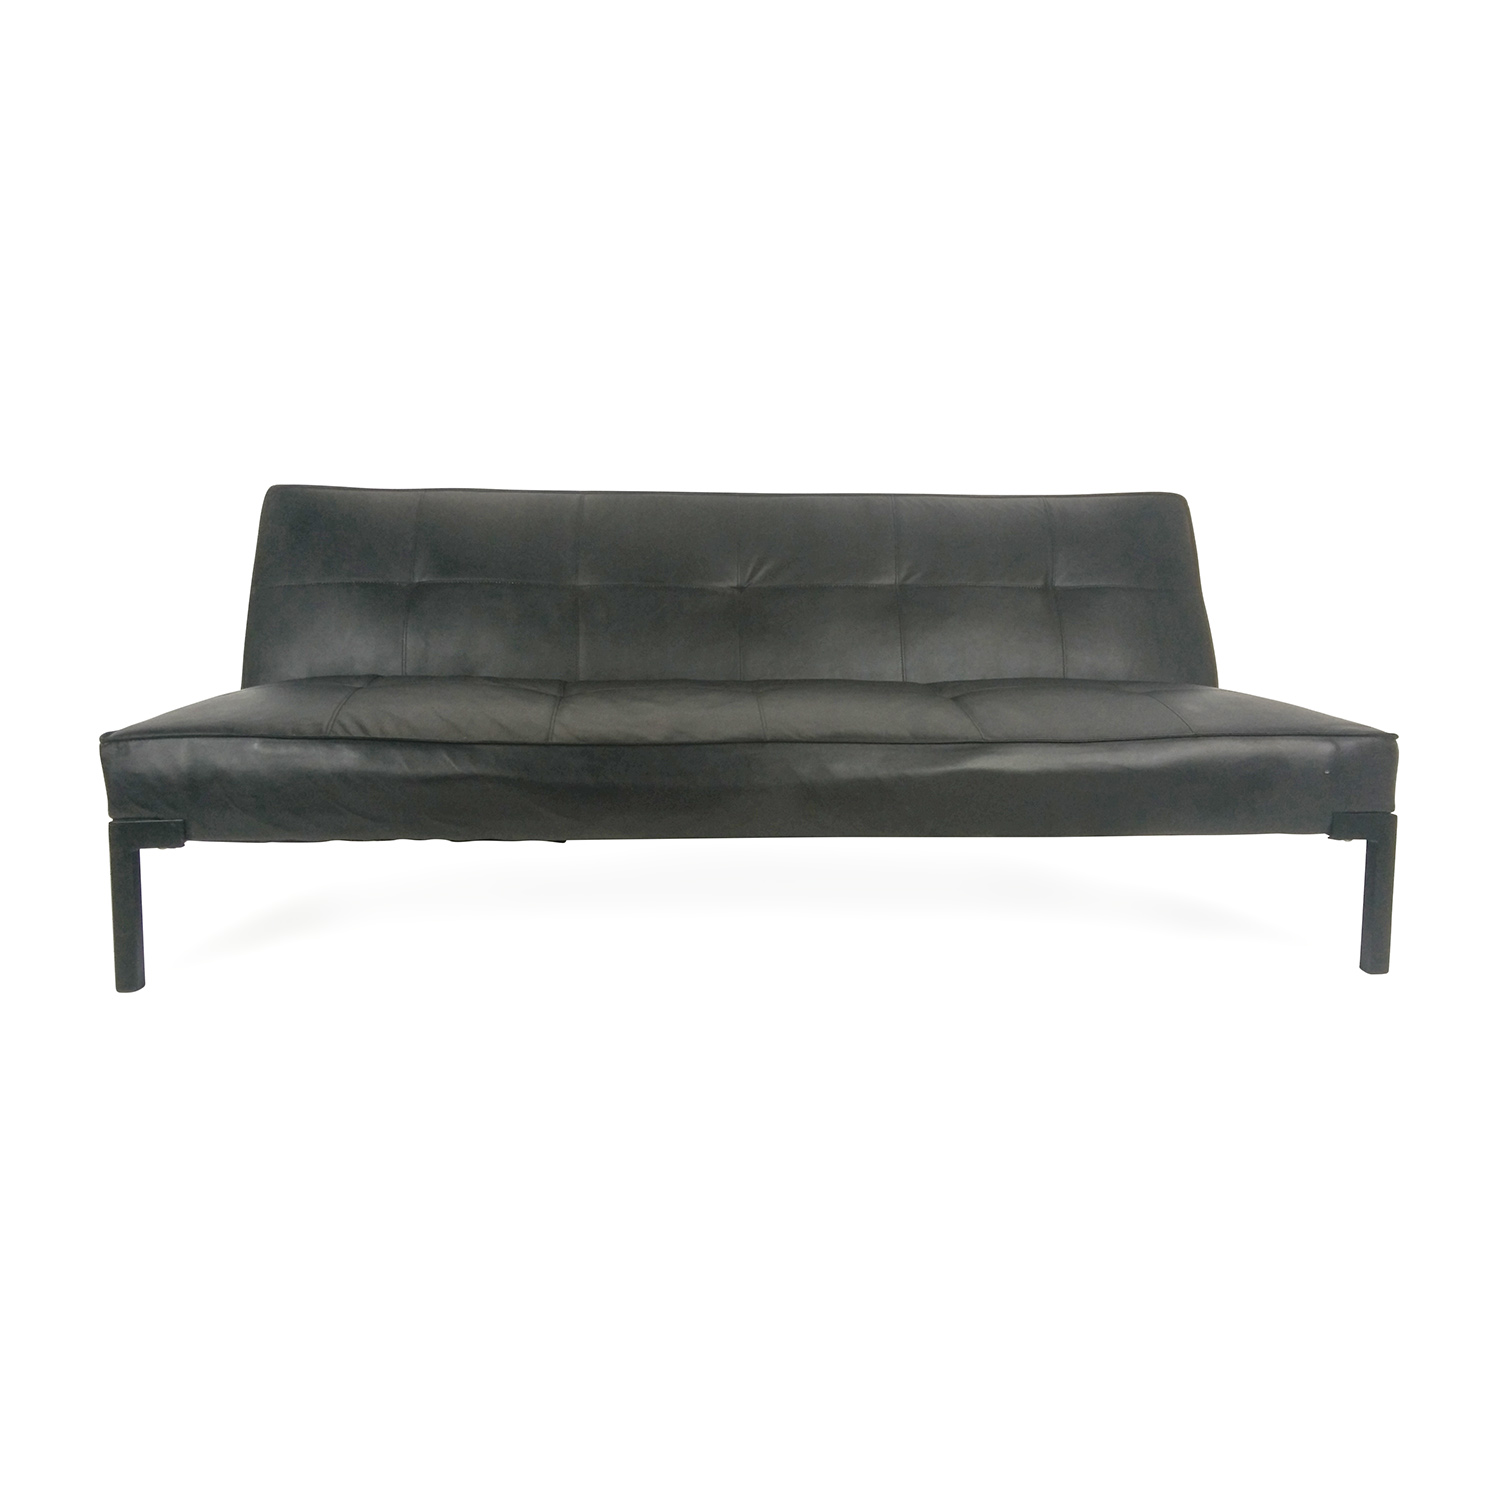 French Make French Make Leather Adjustable Futon Nyc ...